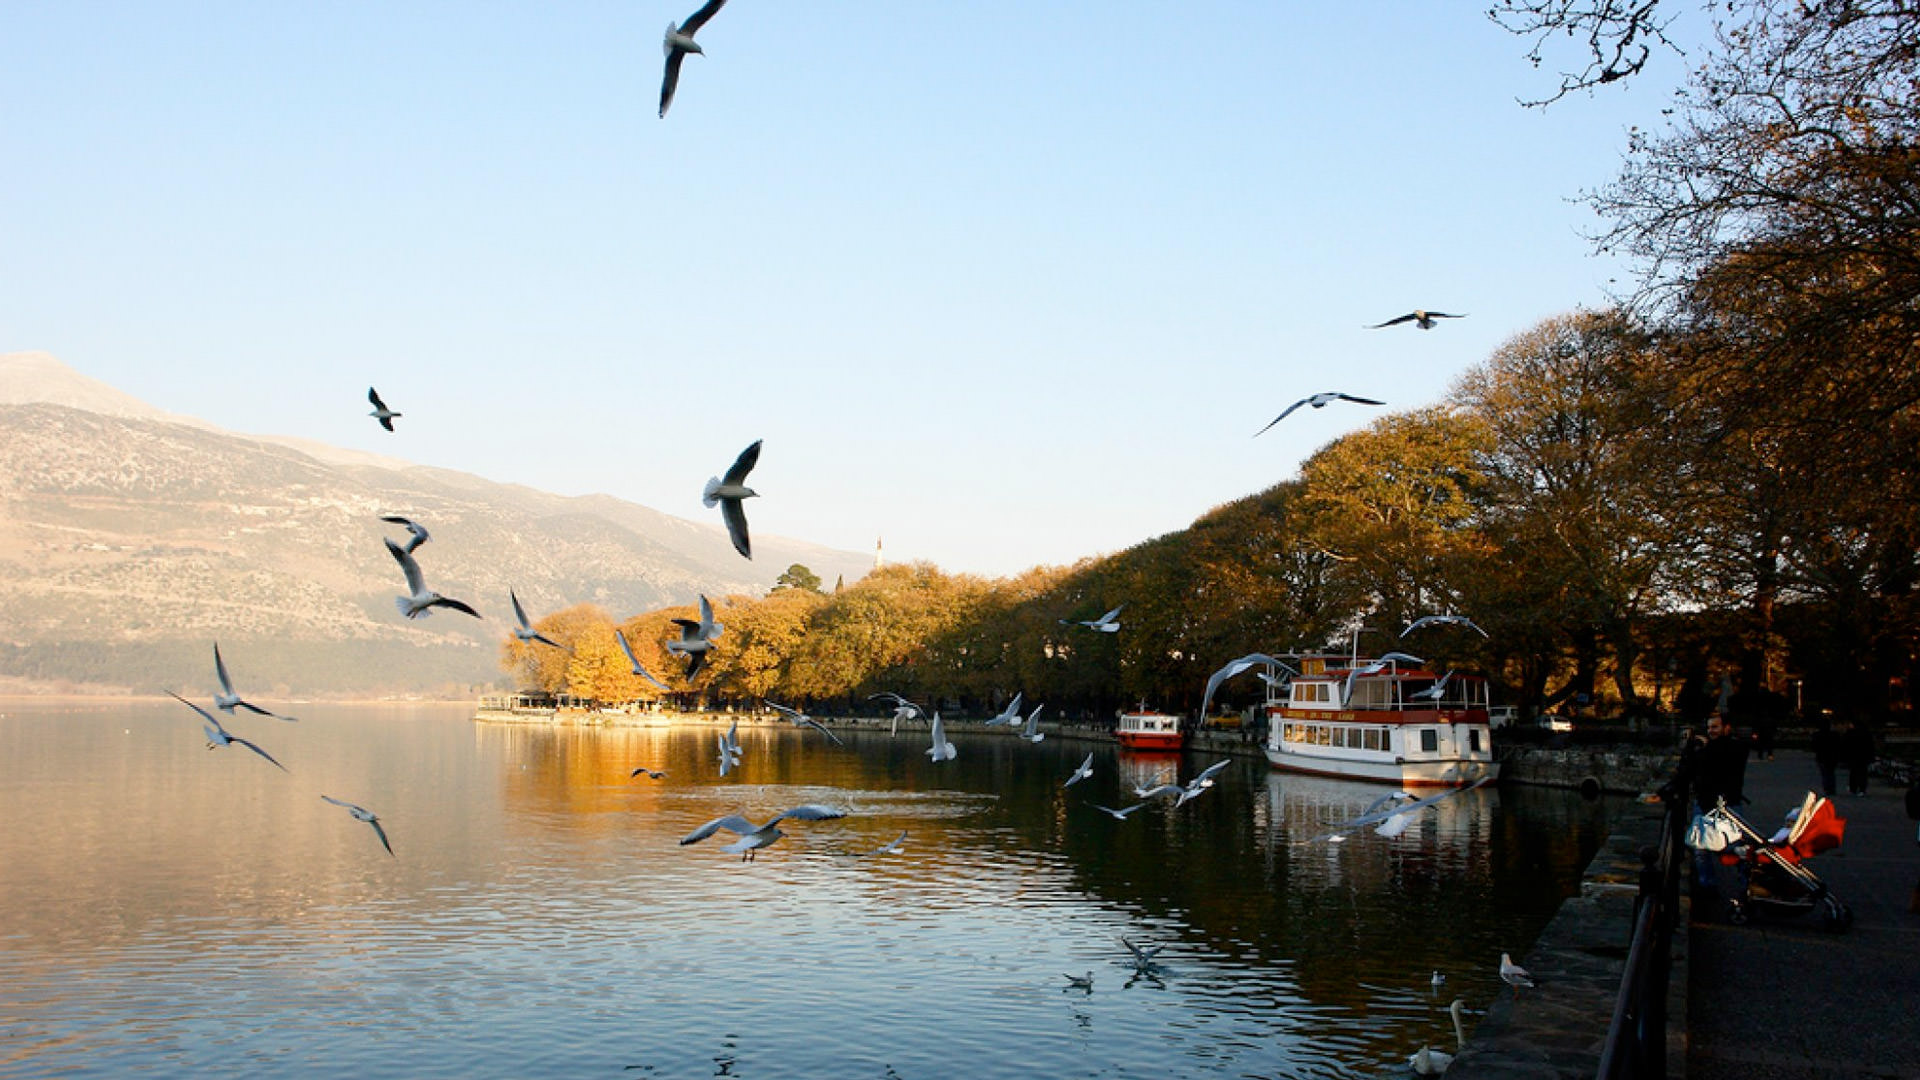 IOANNINA: A TRIP TO THE LAKE AND ITS LEGENDS